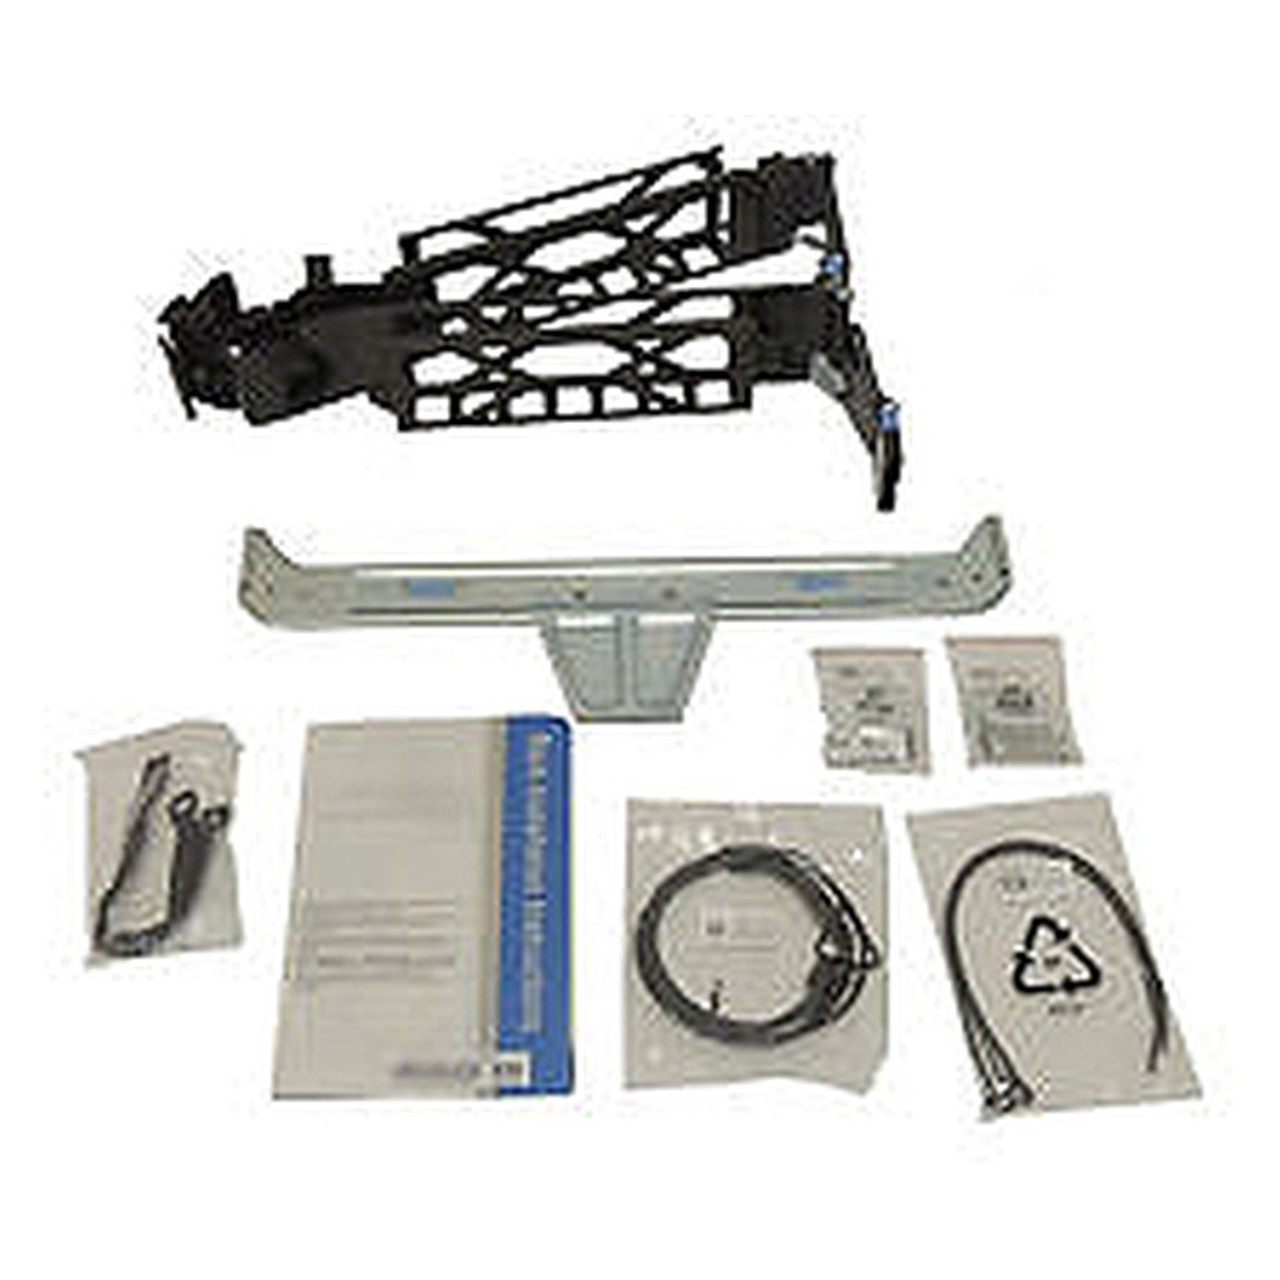 2J1CF Dell 1U Cable Management Arm Kit for PowerEdge R320 R420 R620